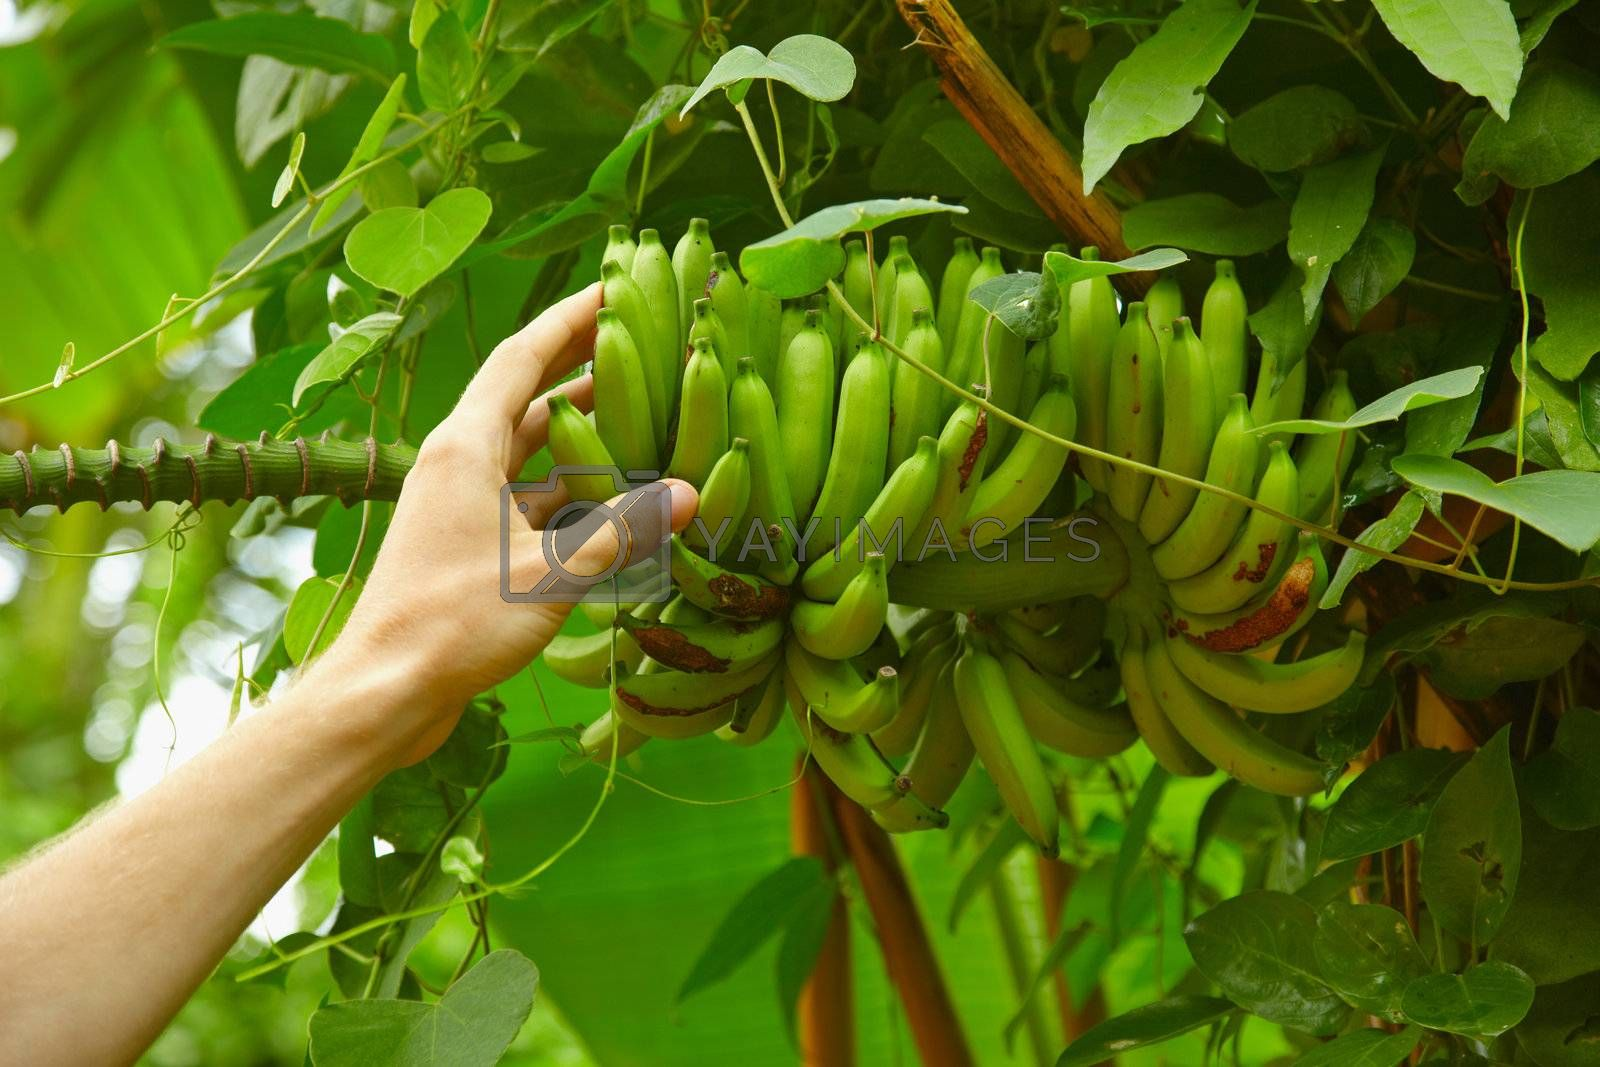 Inedible wild bananas in the tropical forest